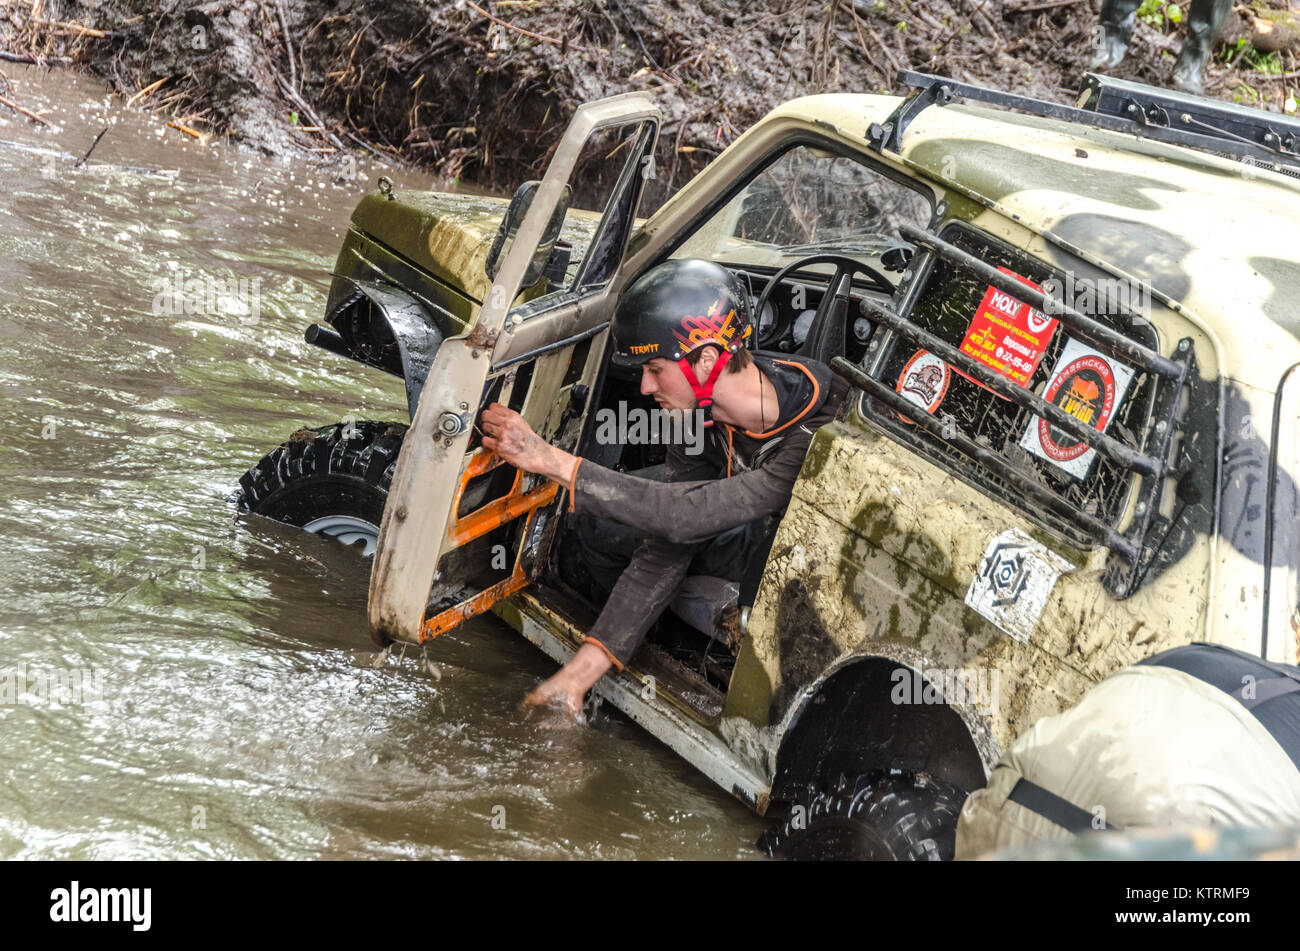 SALOVKA, RUSSIA - MAY 5, 2017: Four-wheel dirve crosses the mud obstacle on the distance of racing - Stock Image